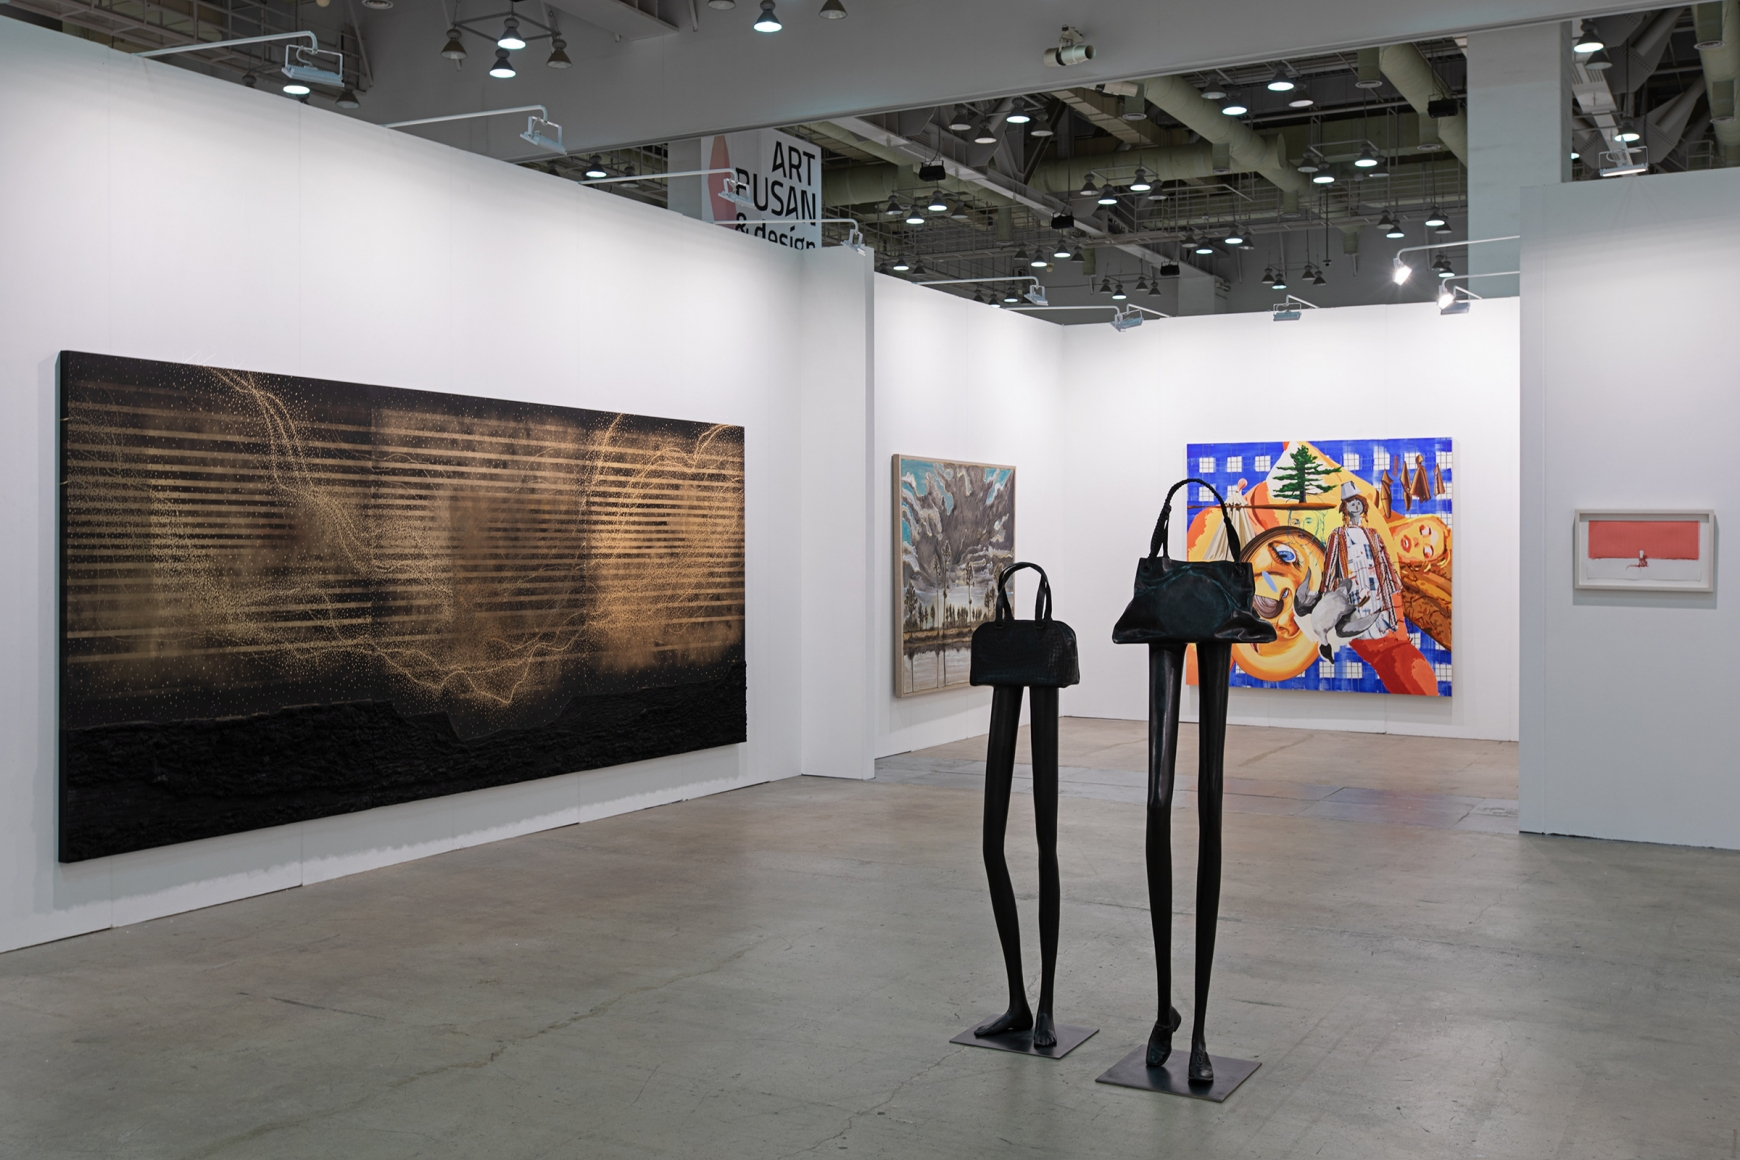 Fourth installation view of Lehmann Maupin's booth at Art Busan & design 2020